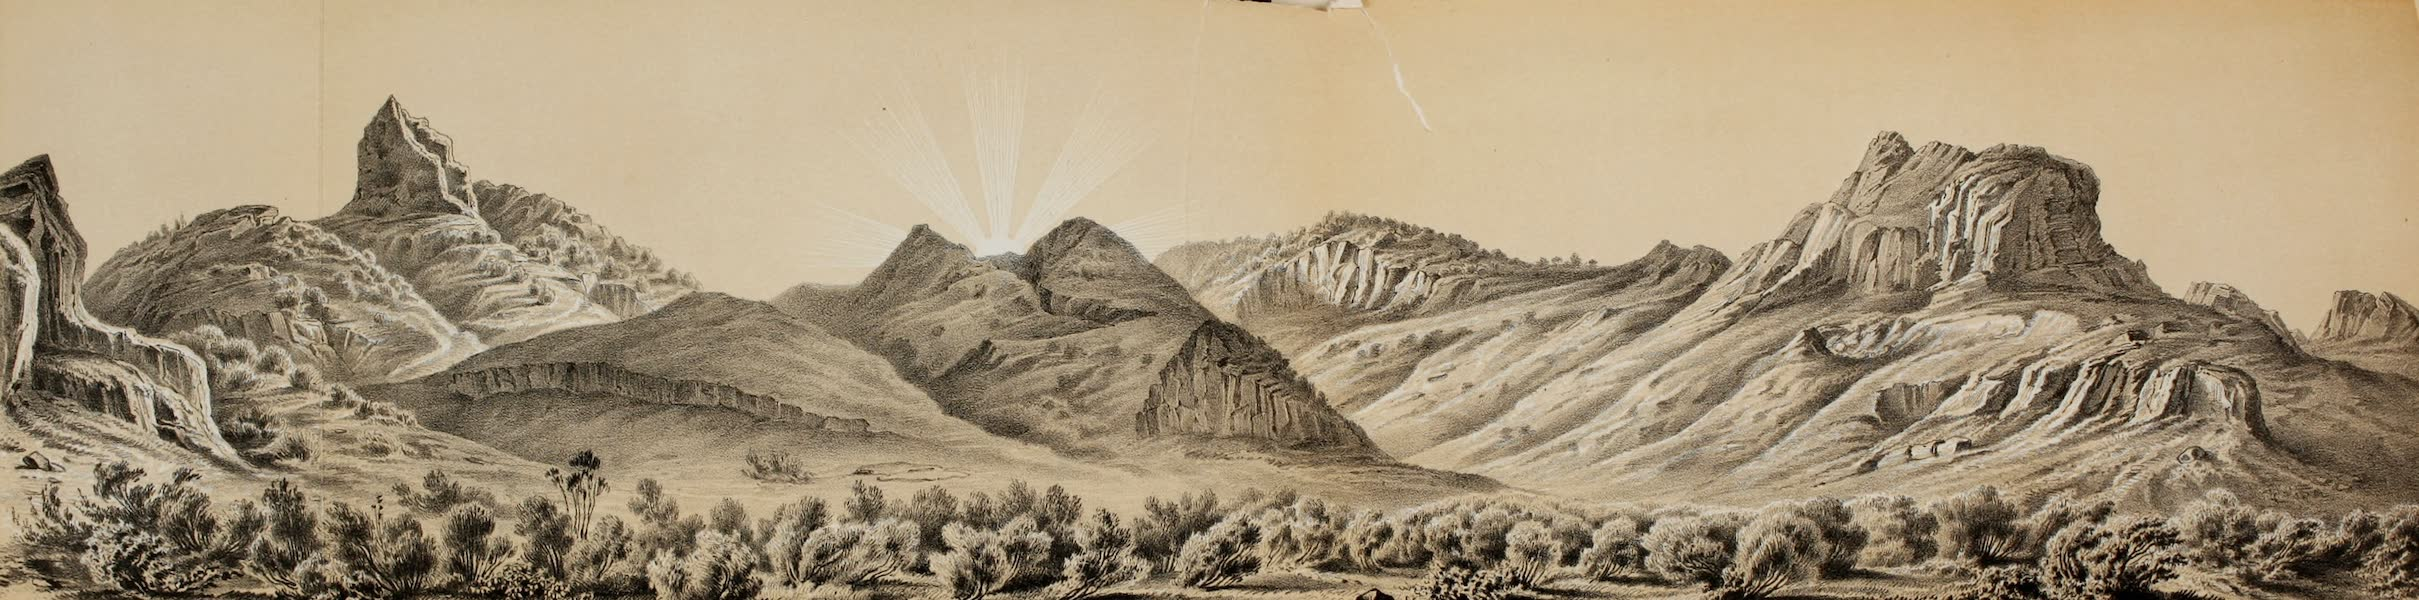 Exploration and Survey of the Valley of the Great Salt Lake of Utah - Part of Western Slope of Promontory Range (1852)